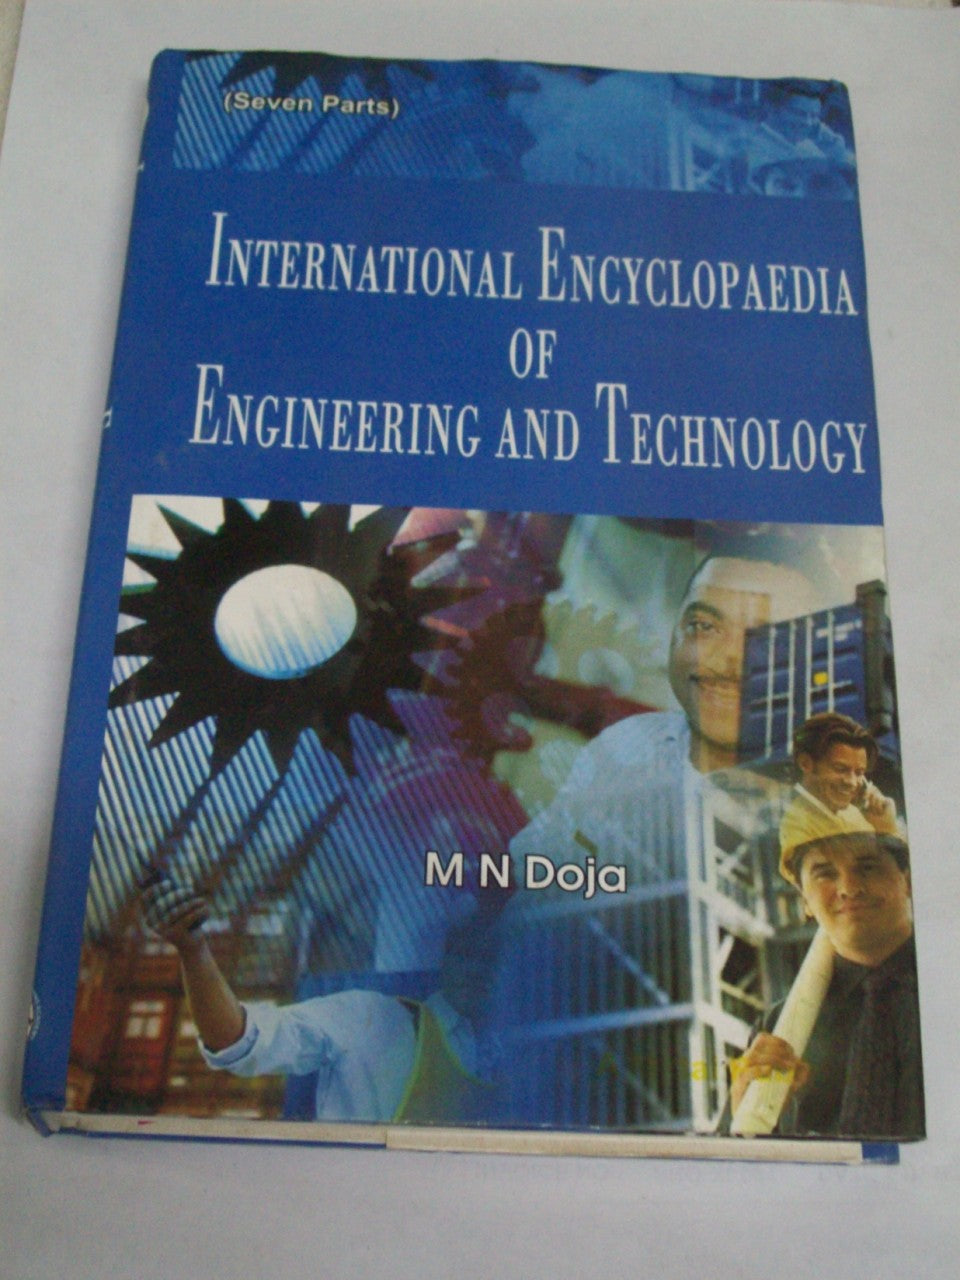 International Encyclopaedia of Engineering and Technology ( 7 Parts)